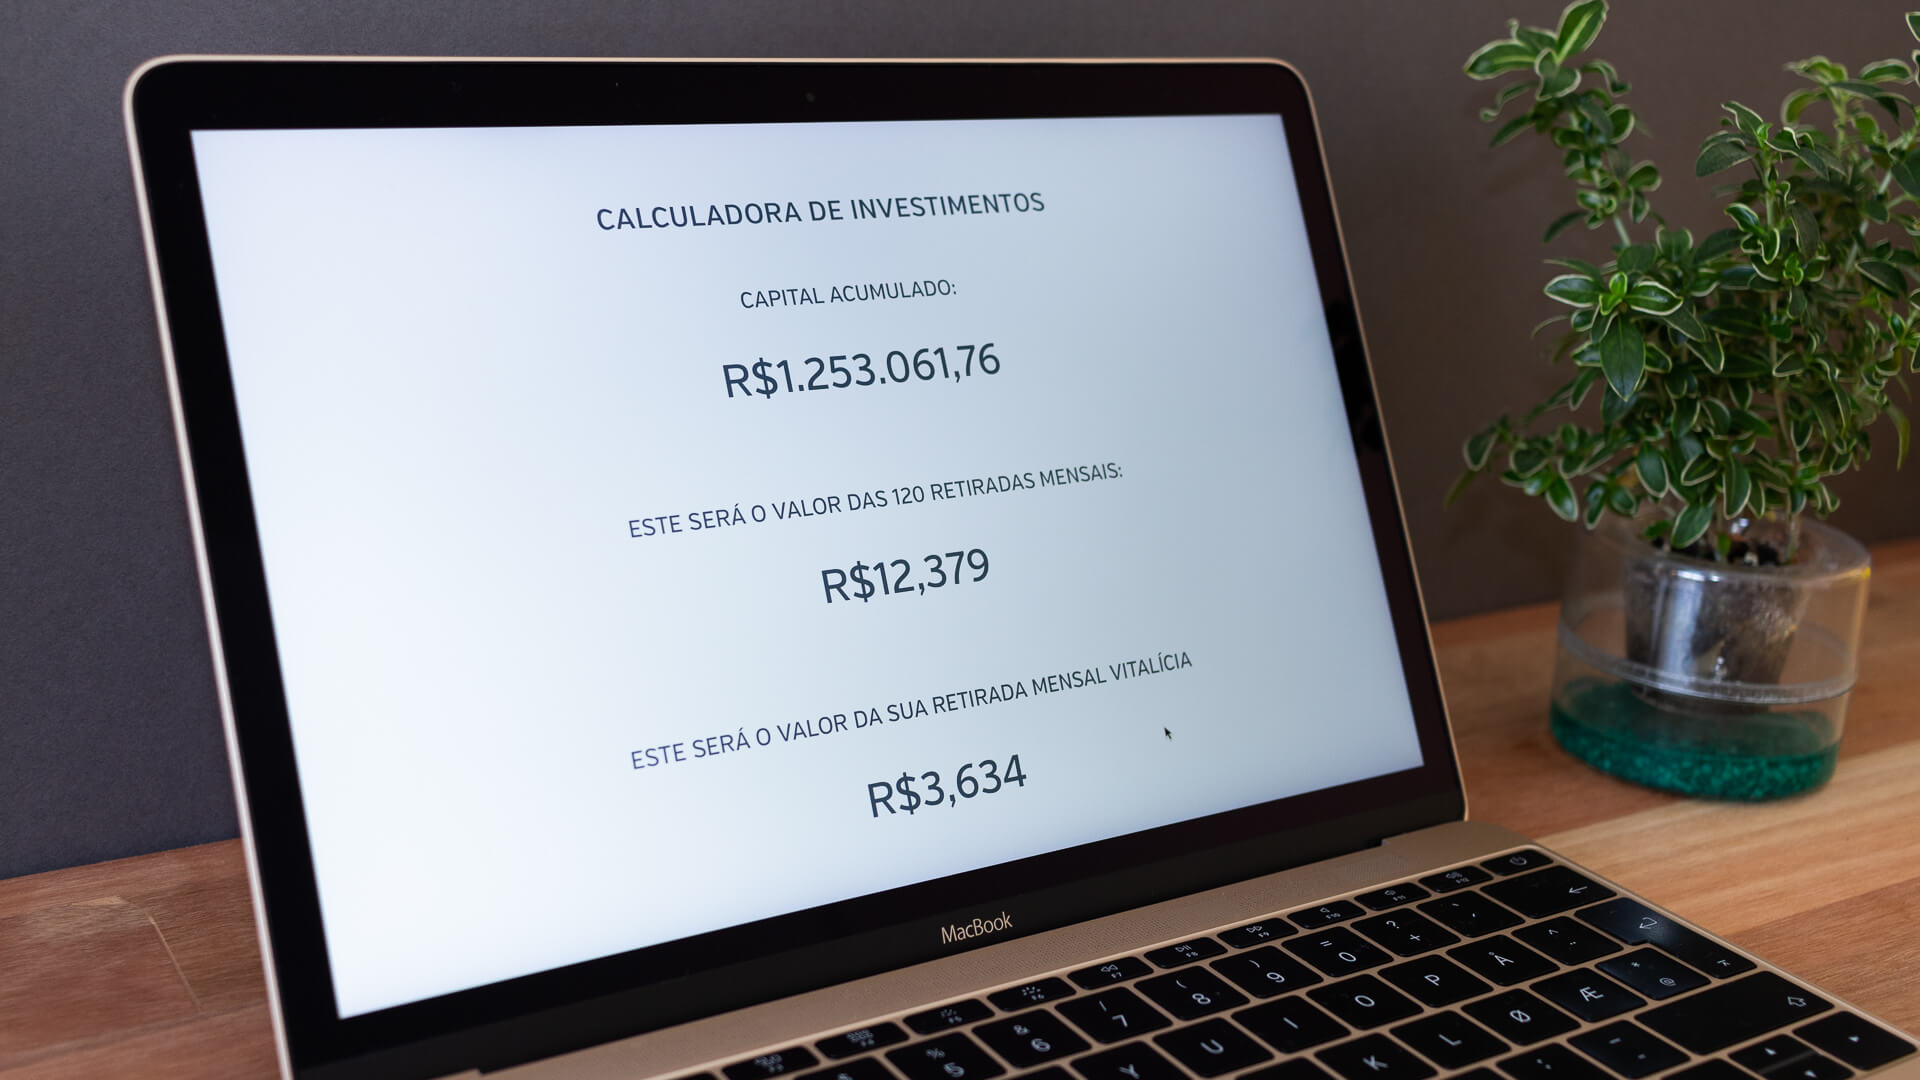 Step #4 of the investment calculator.